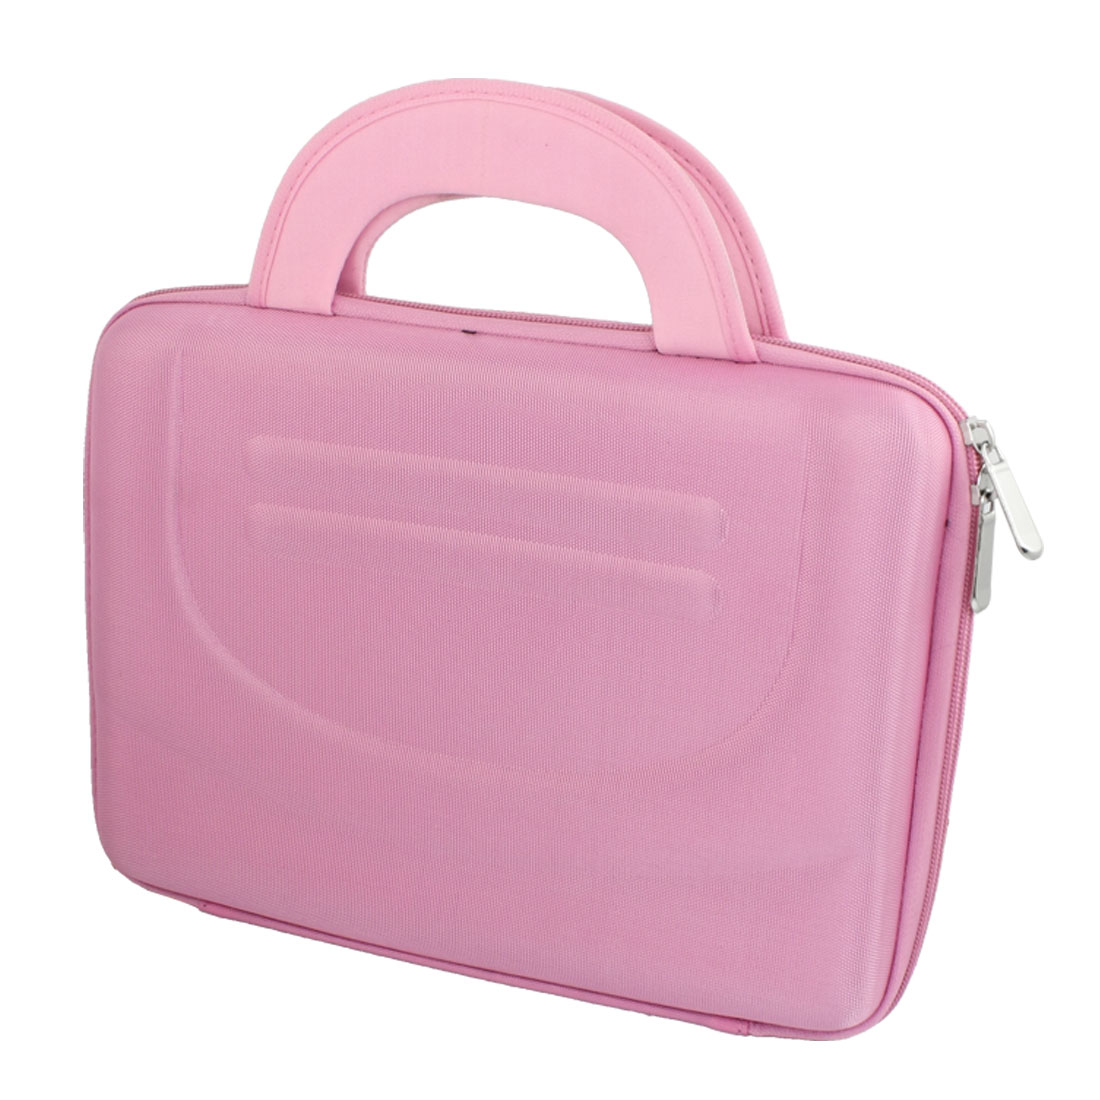 "10"" 10.1"" 10.2"" Pink Laptop Sleeve Handbag + Zipper"